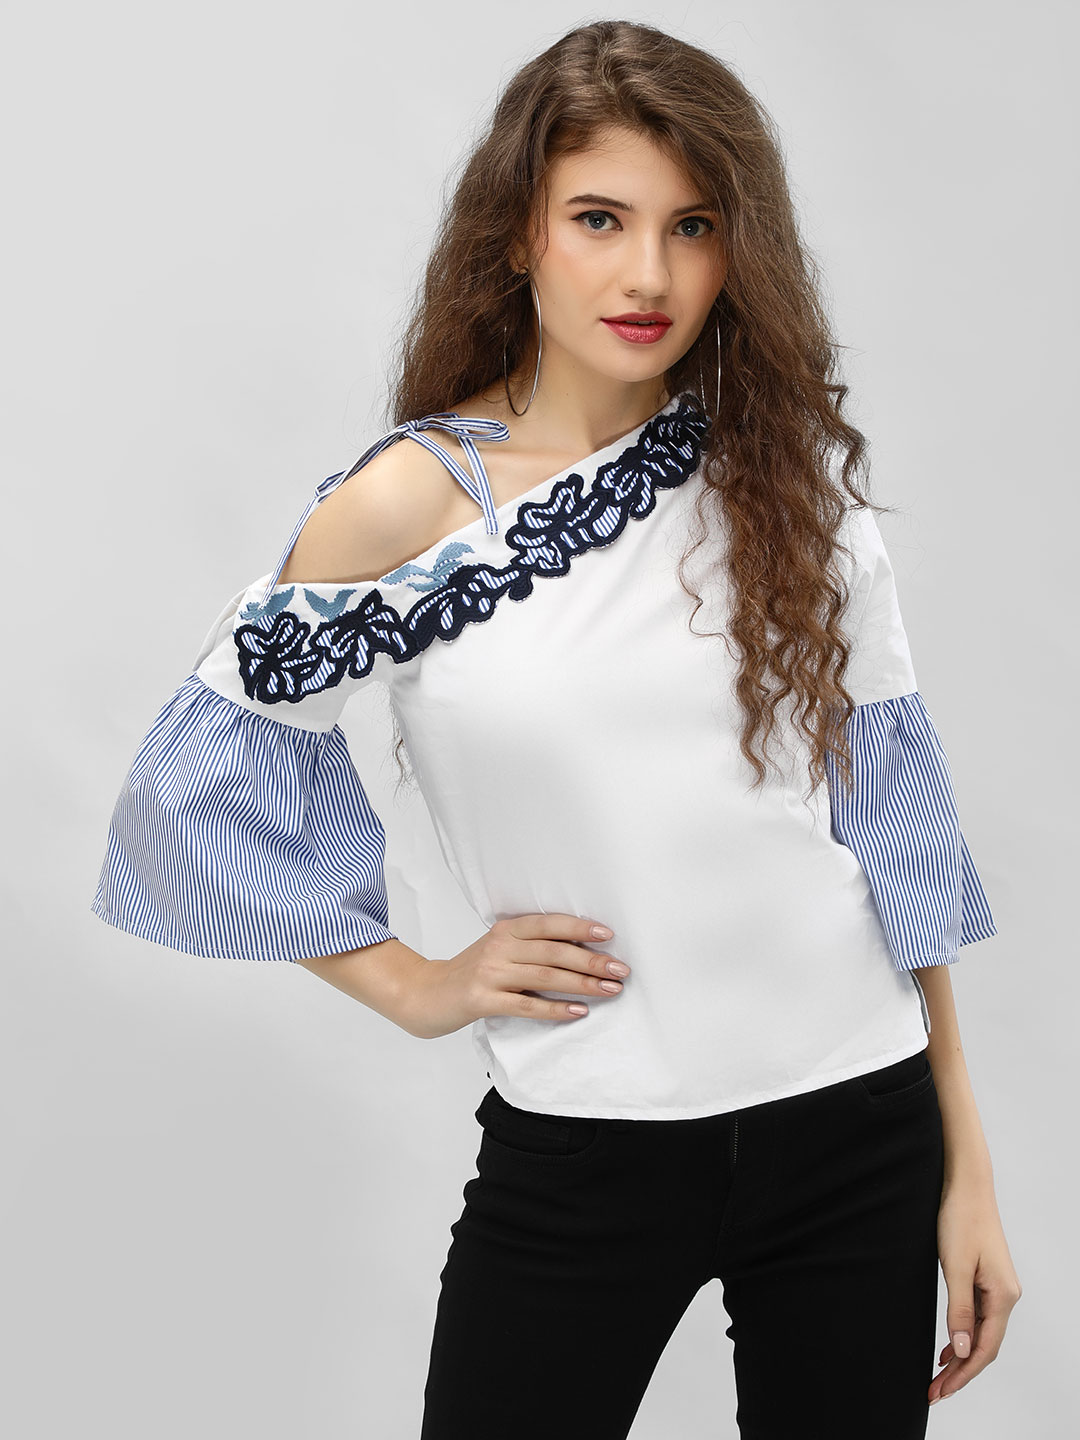 Ri-Dress Multi One Shoulder Bell Sleeve Blouse 1